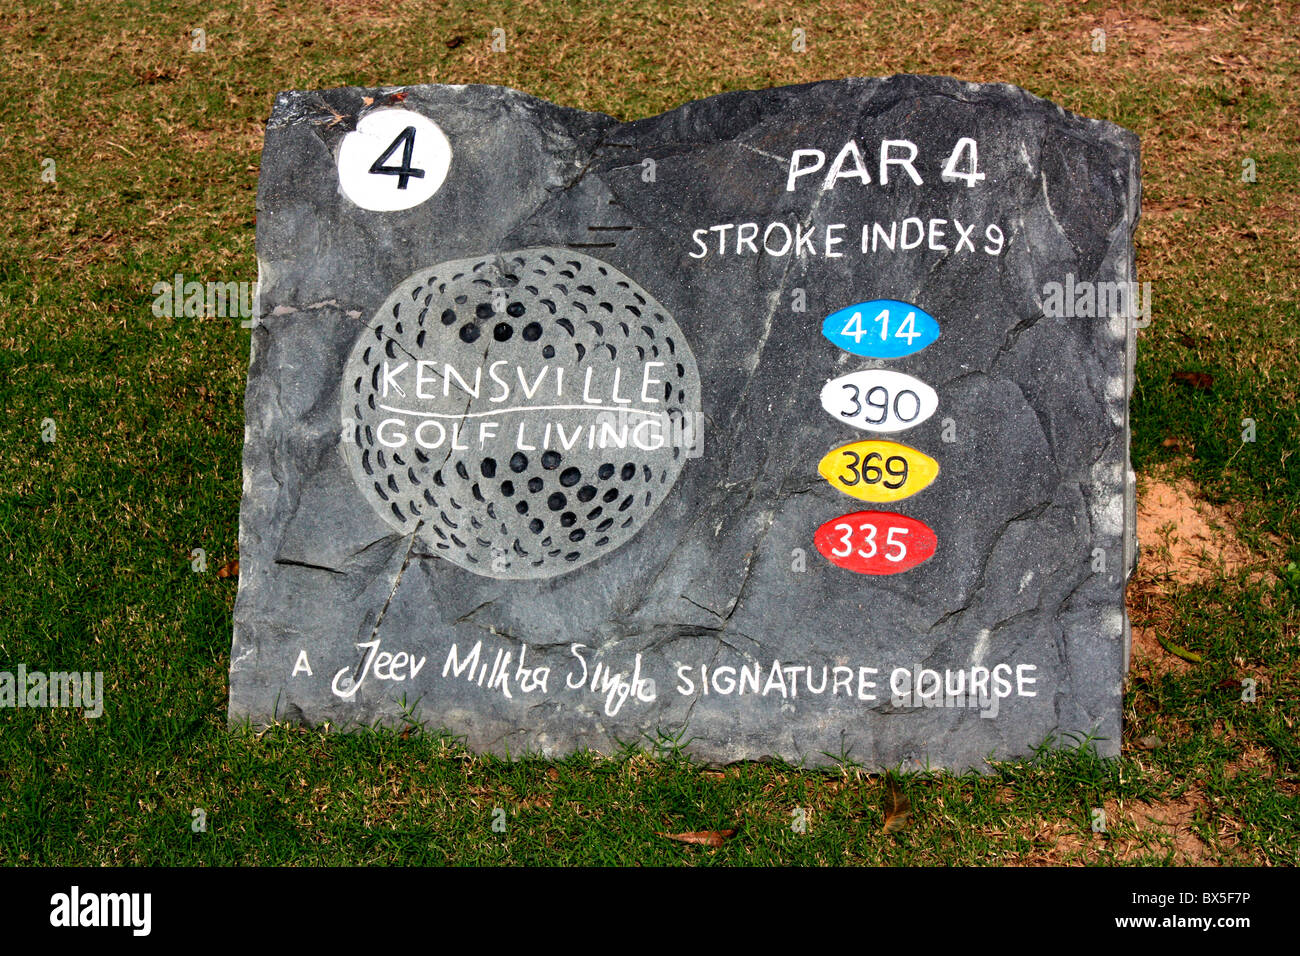 Par 4 yardage information board in a golf course - Stock Image